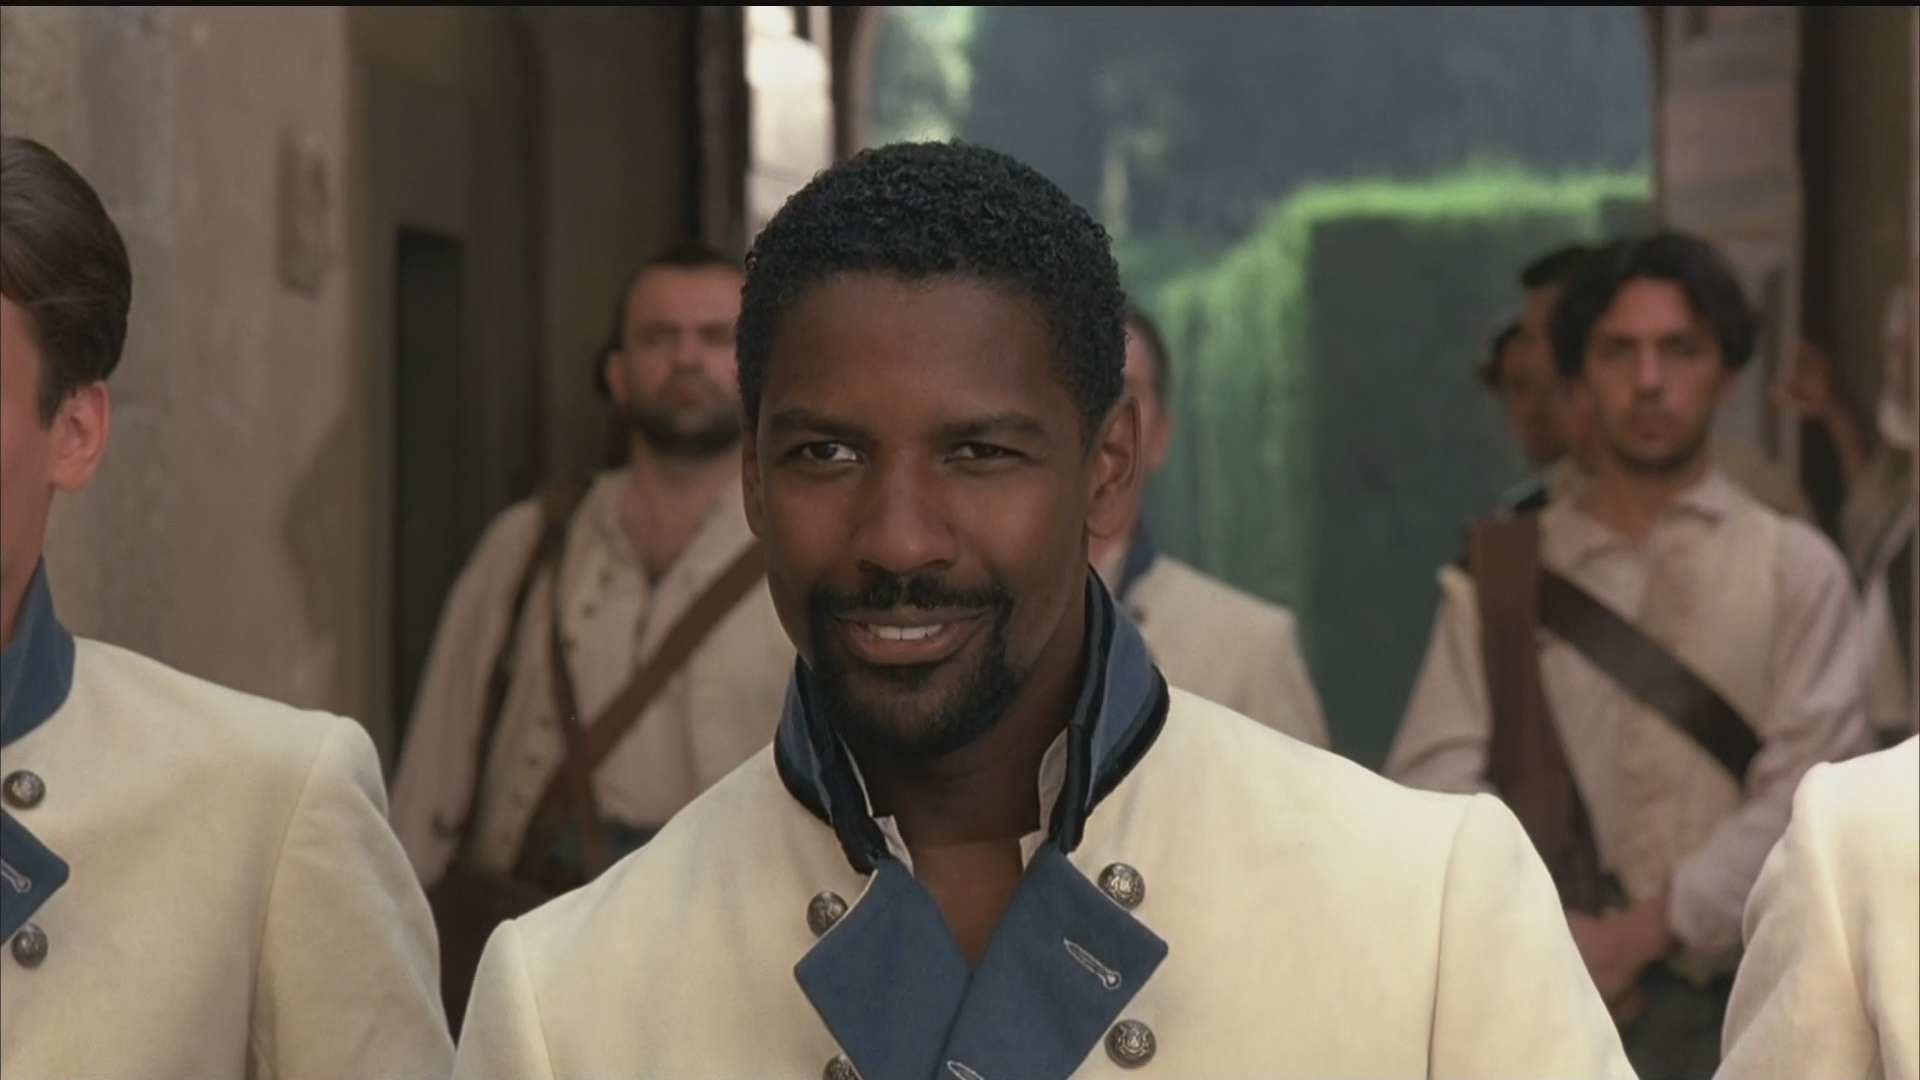 Denzel Washington in MUCH ADO ABOUT NOTHING (1993) © Renaissance Films